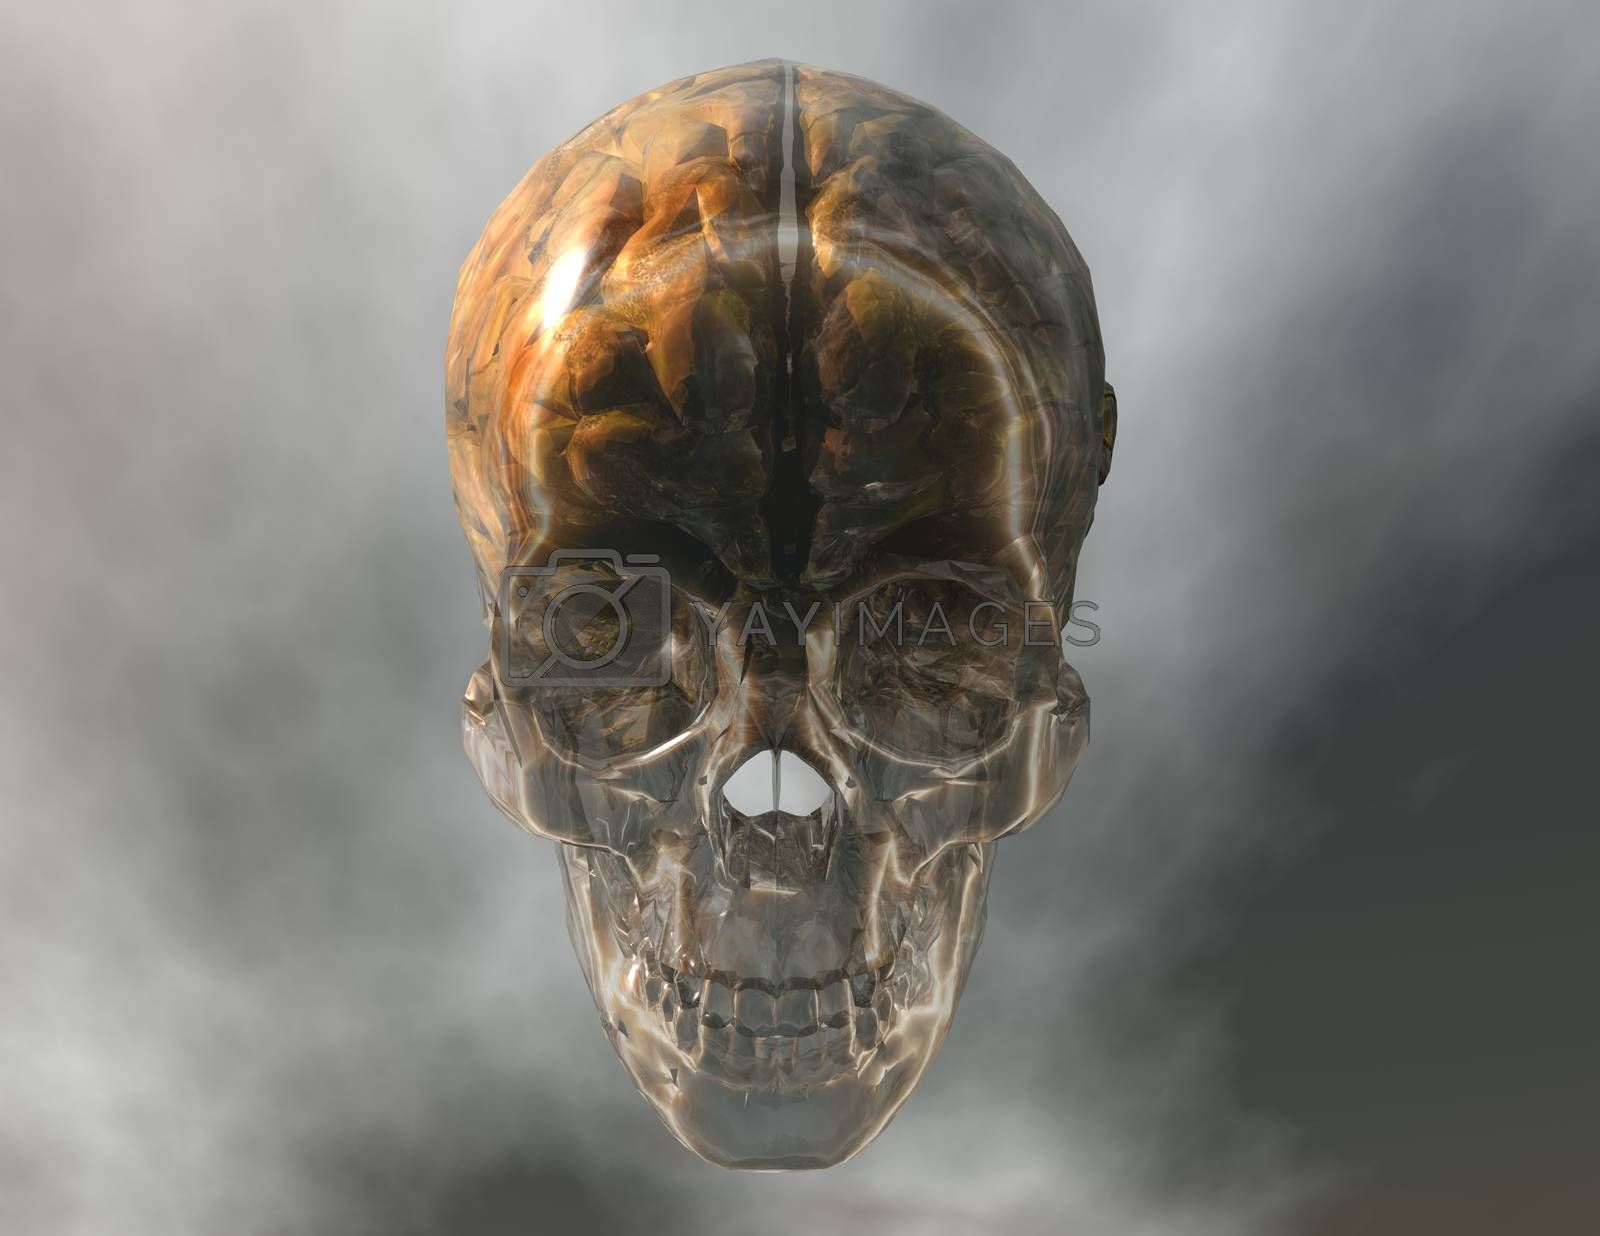 digital visualization of a crystal skull with brain